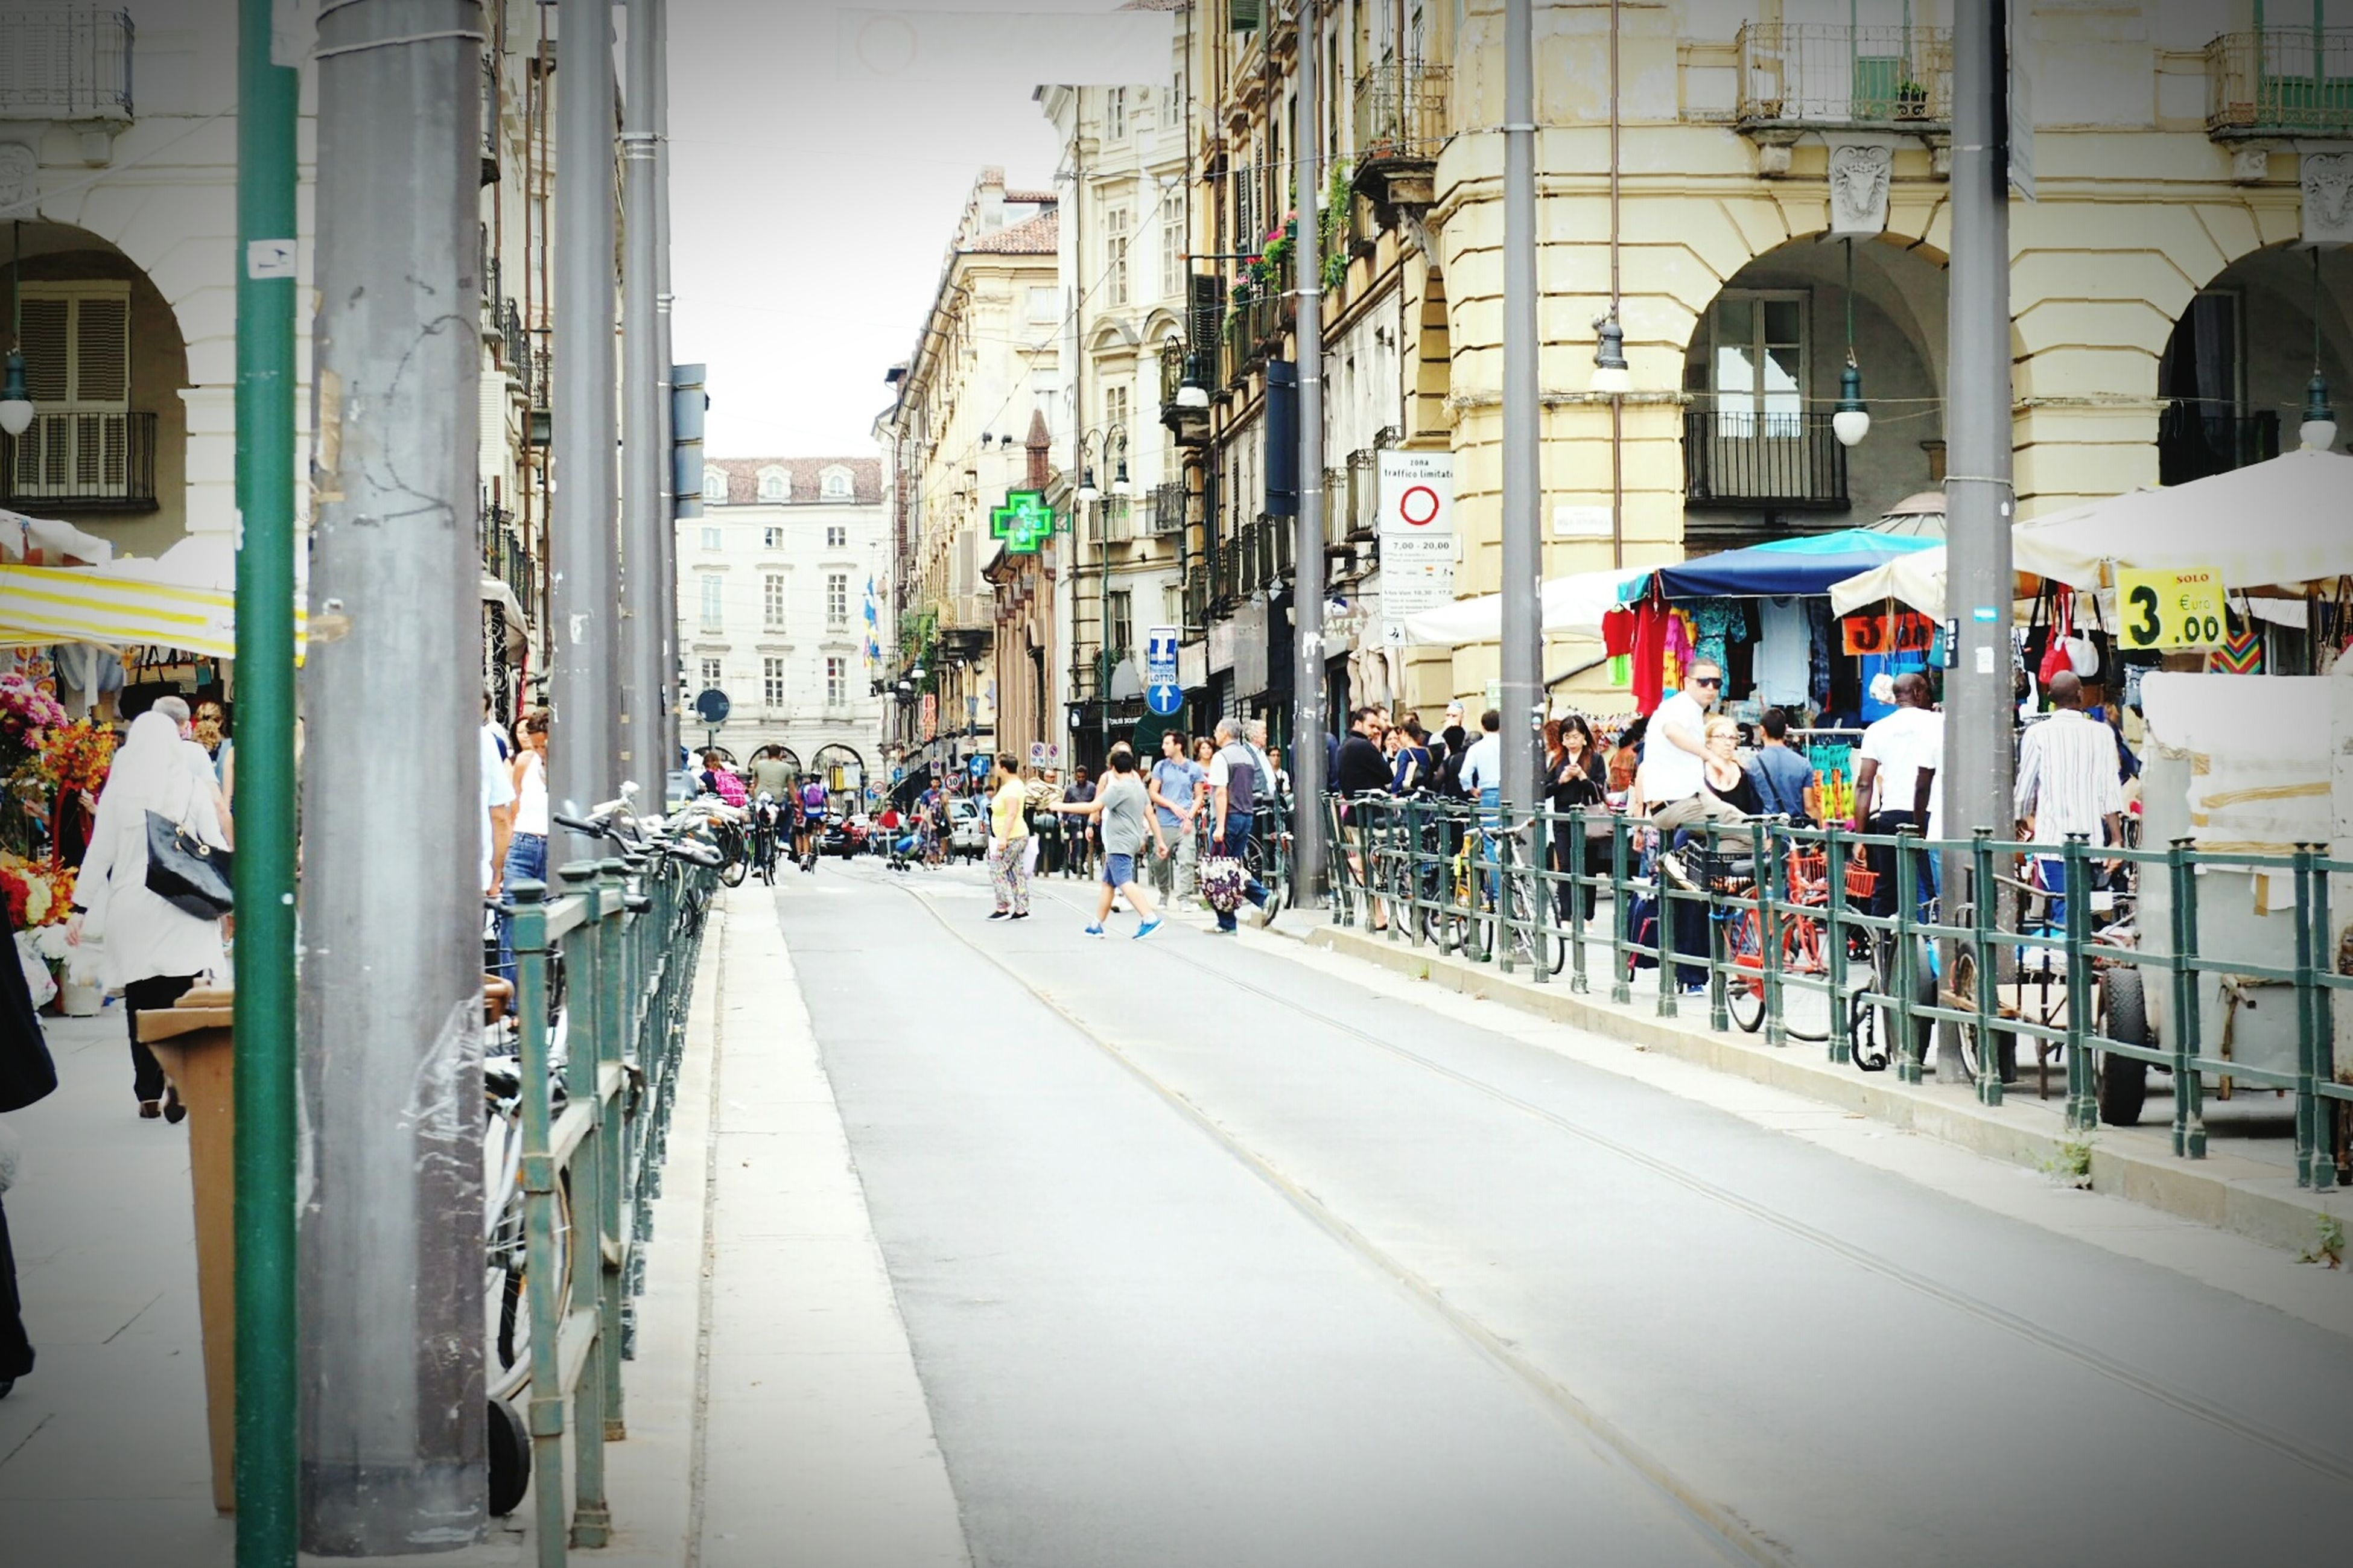 built structure, architecture, building exterior, city, street, road, transportation, city street, men, large group of people, car, city life, land vehicle, travel destinations, outdoors, day, pedestrian, surface level